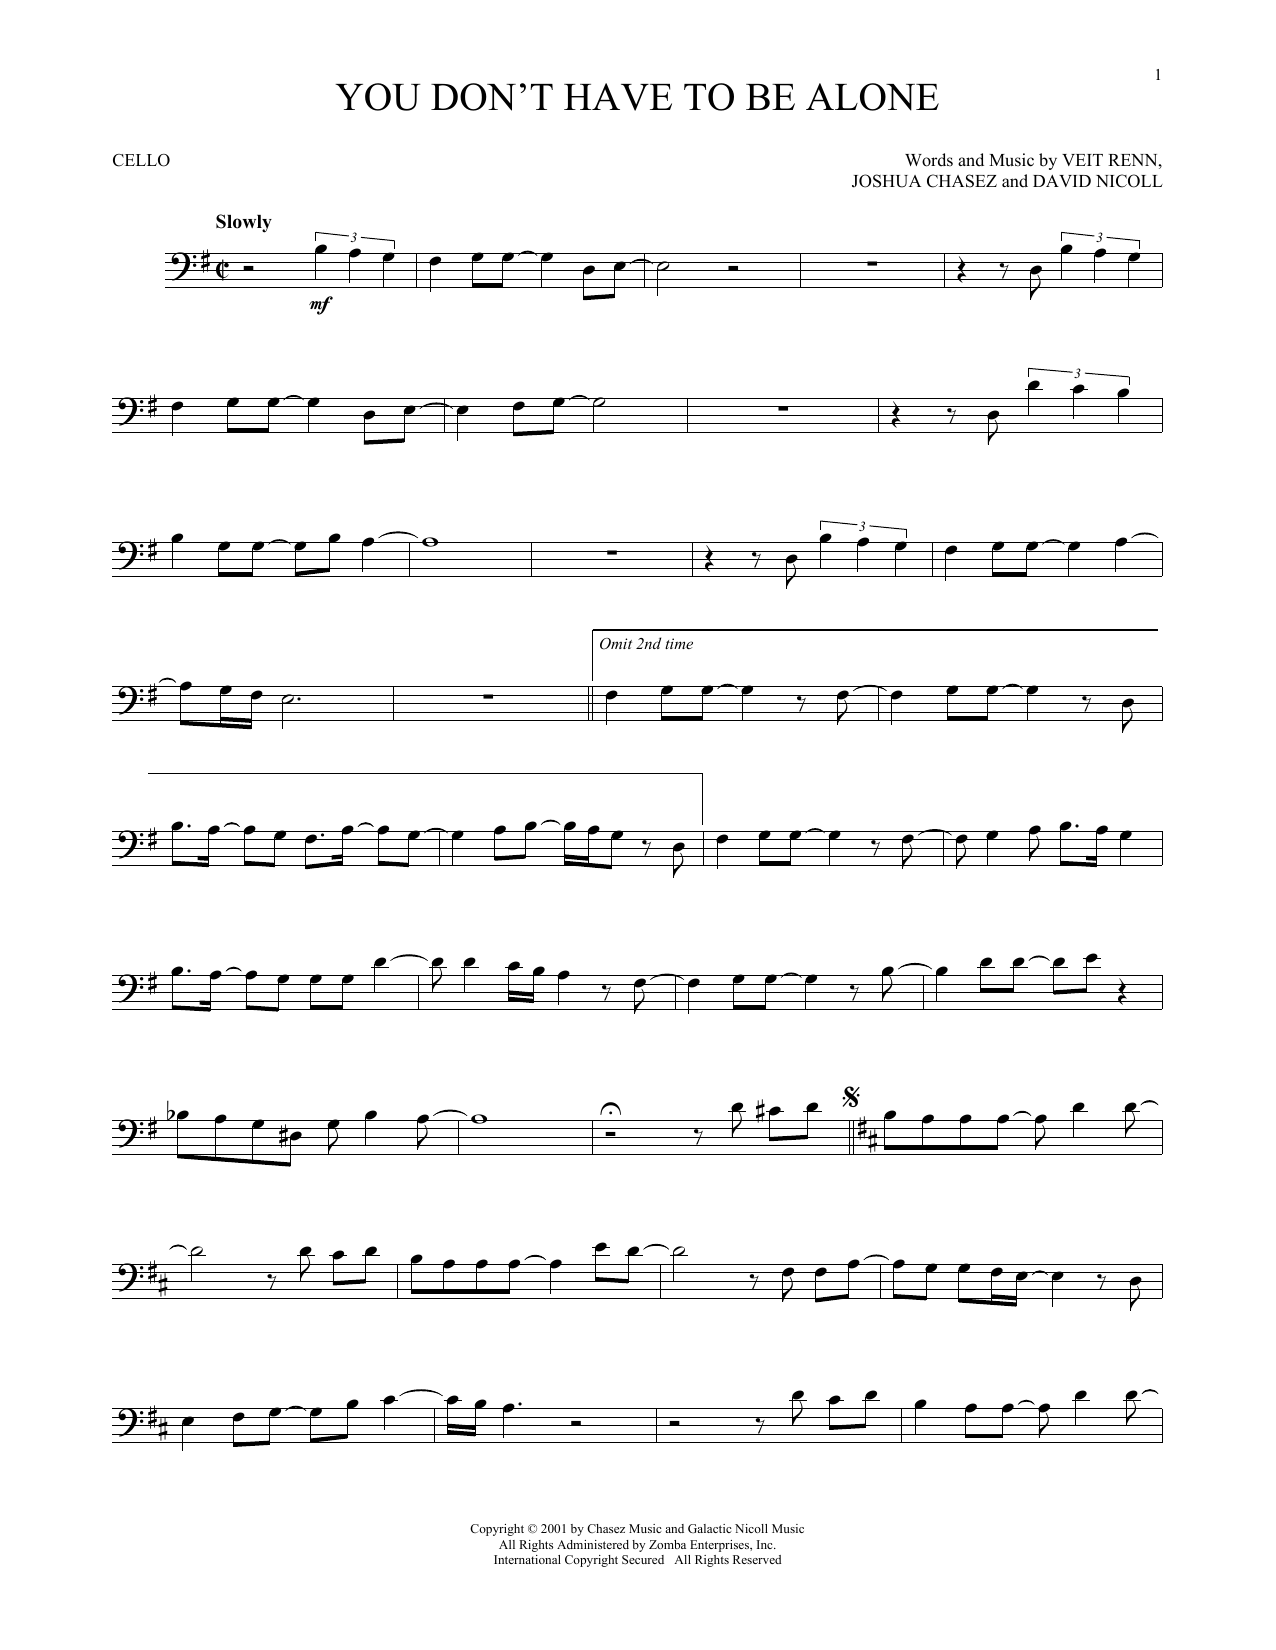 Sheet Music Digital Files To Print - Licensed NSYNC Digital Sheet Music